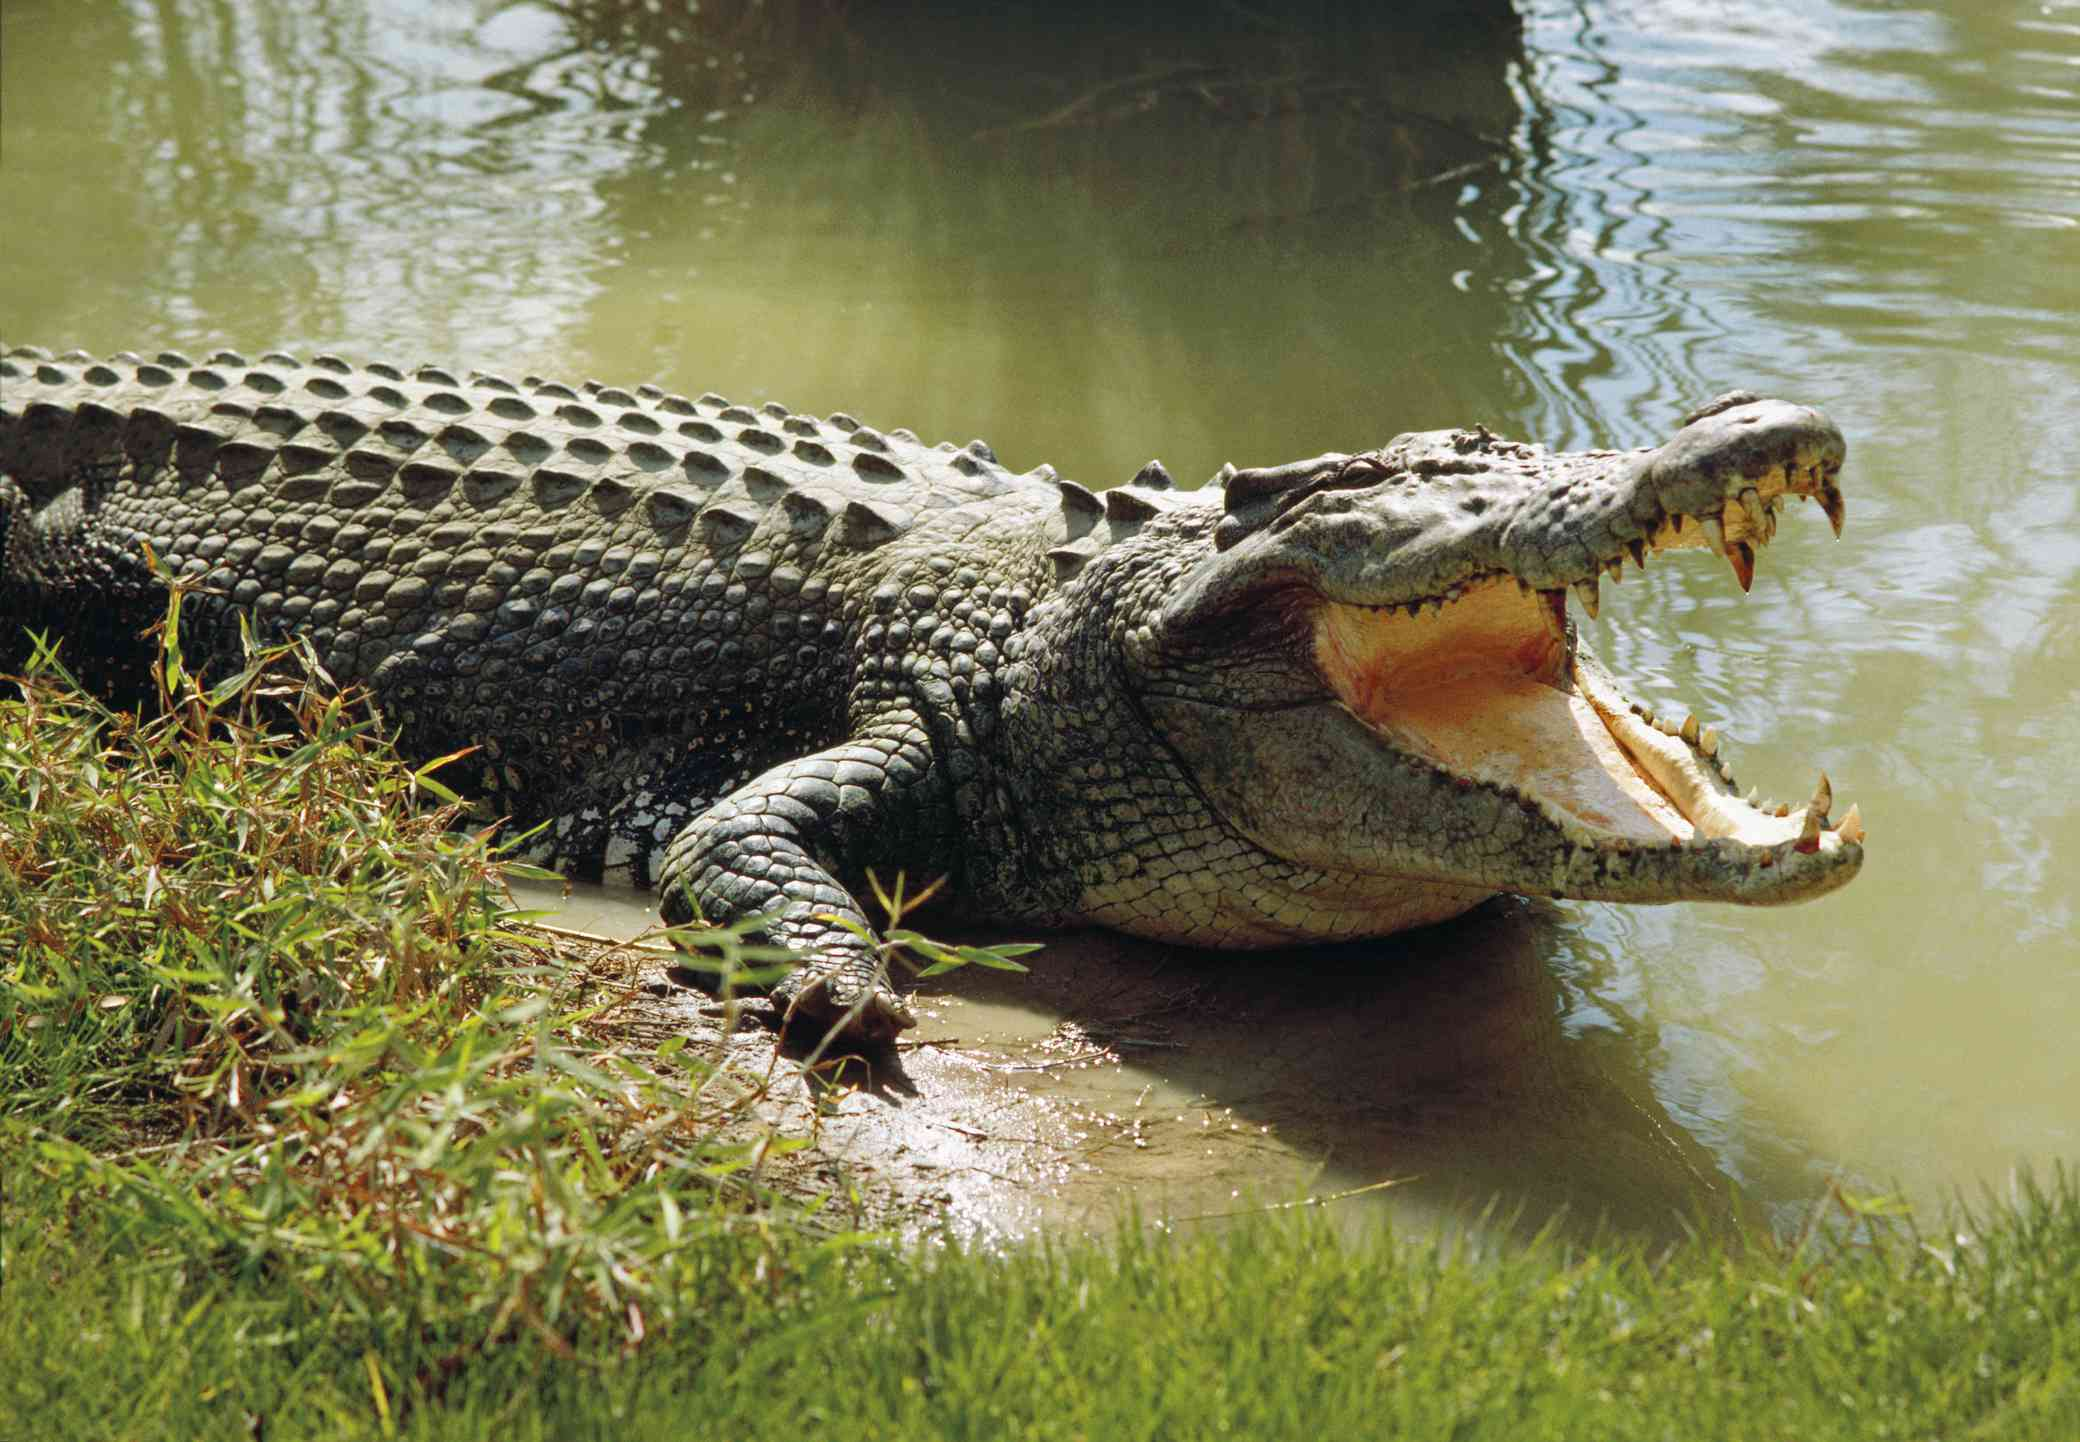 Saltwater crocodile laying on a grassy bank with its mouth open